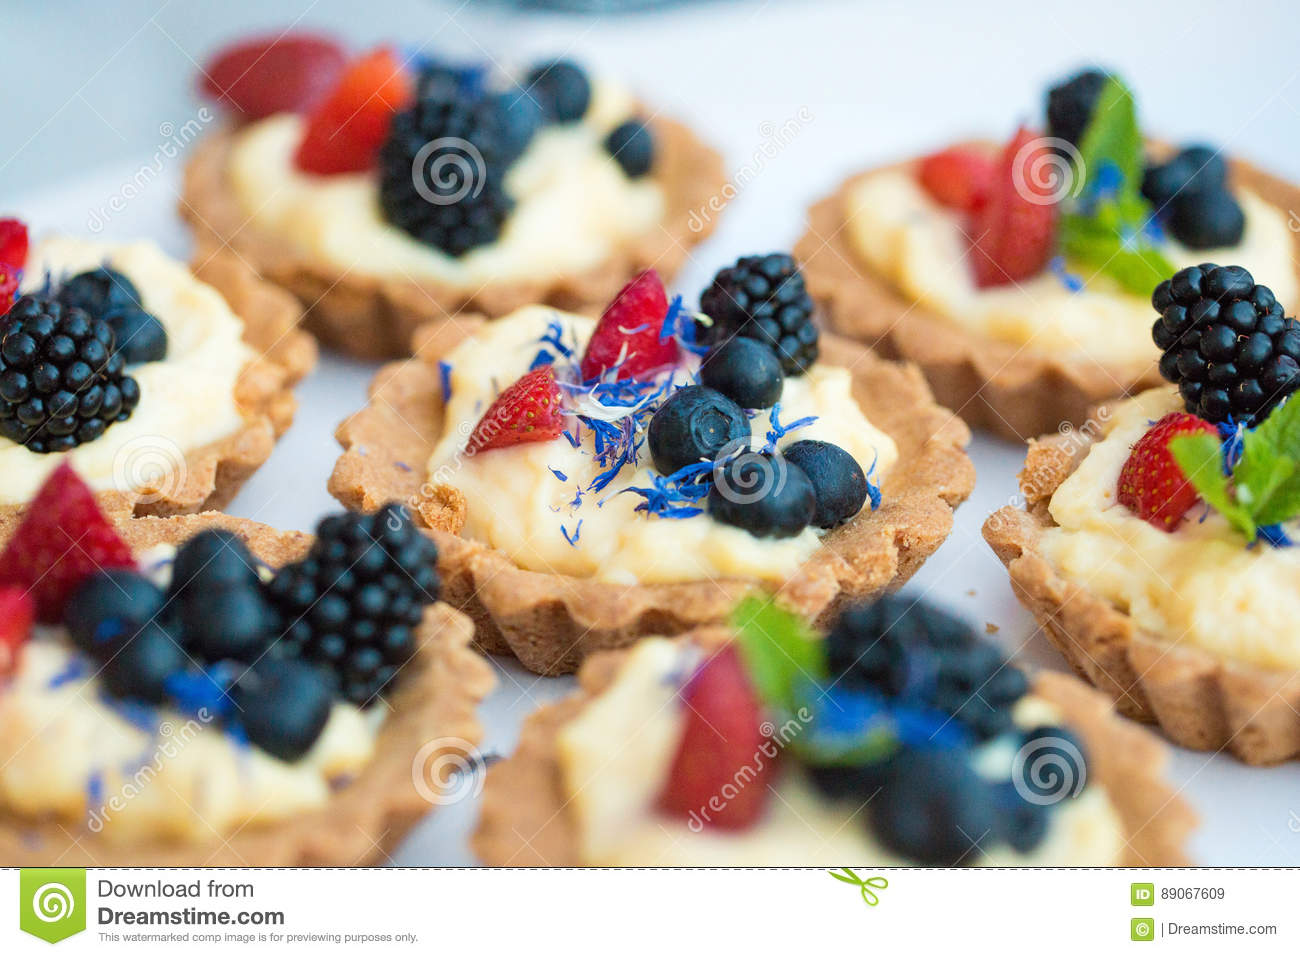 Colored desserts provided in glass jars